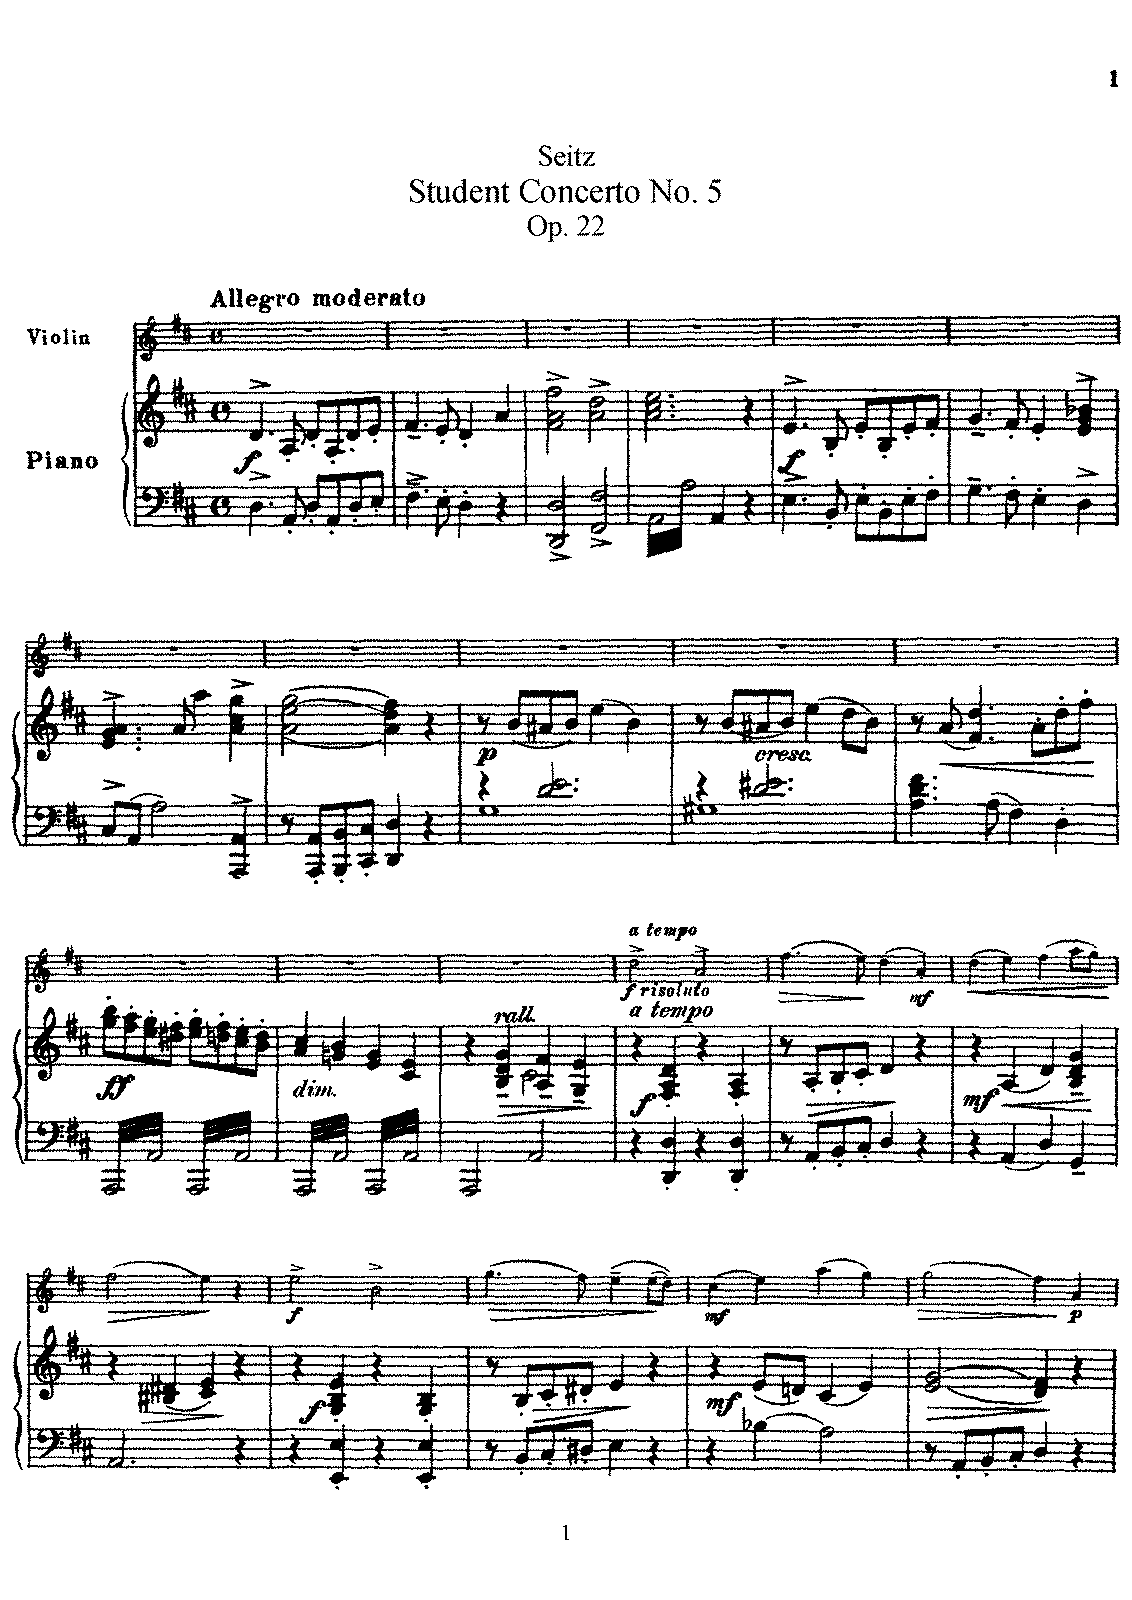 PMLP155530-FSeitz Student Concerto No.5 for Violin and Piano Op.22 Piano Score.pdf